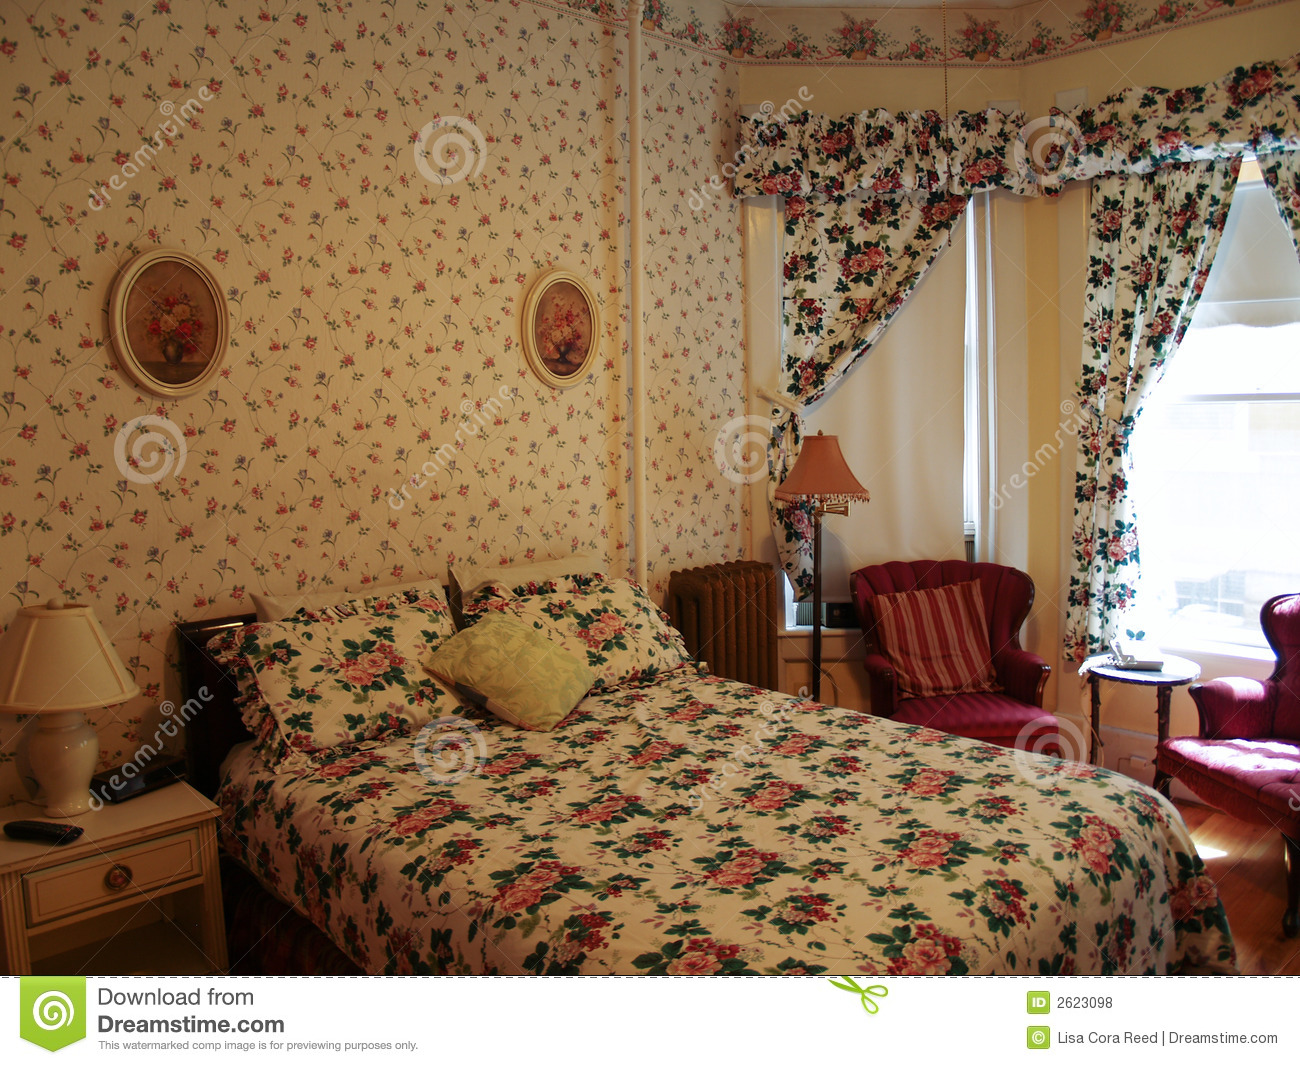 rustic or old fashioned bedroom design